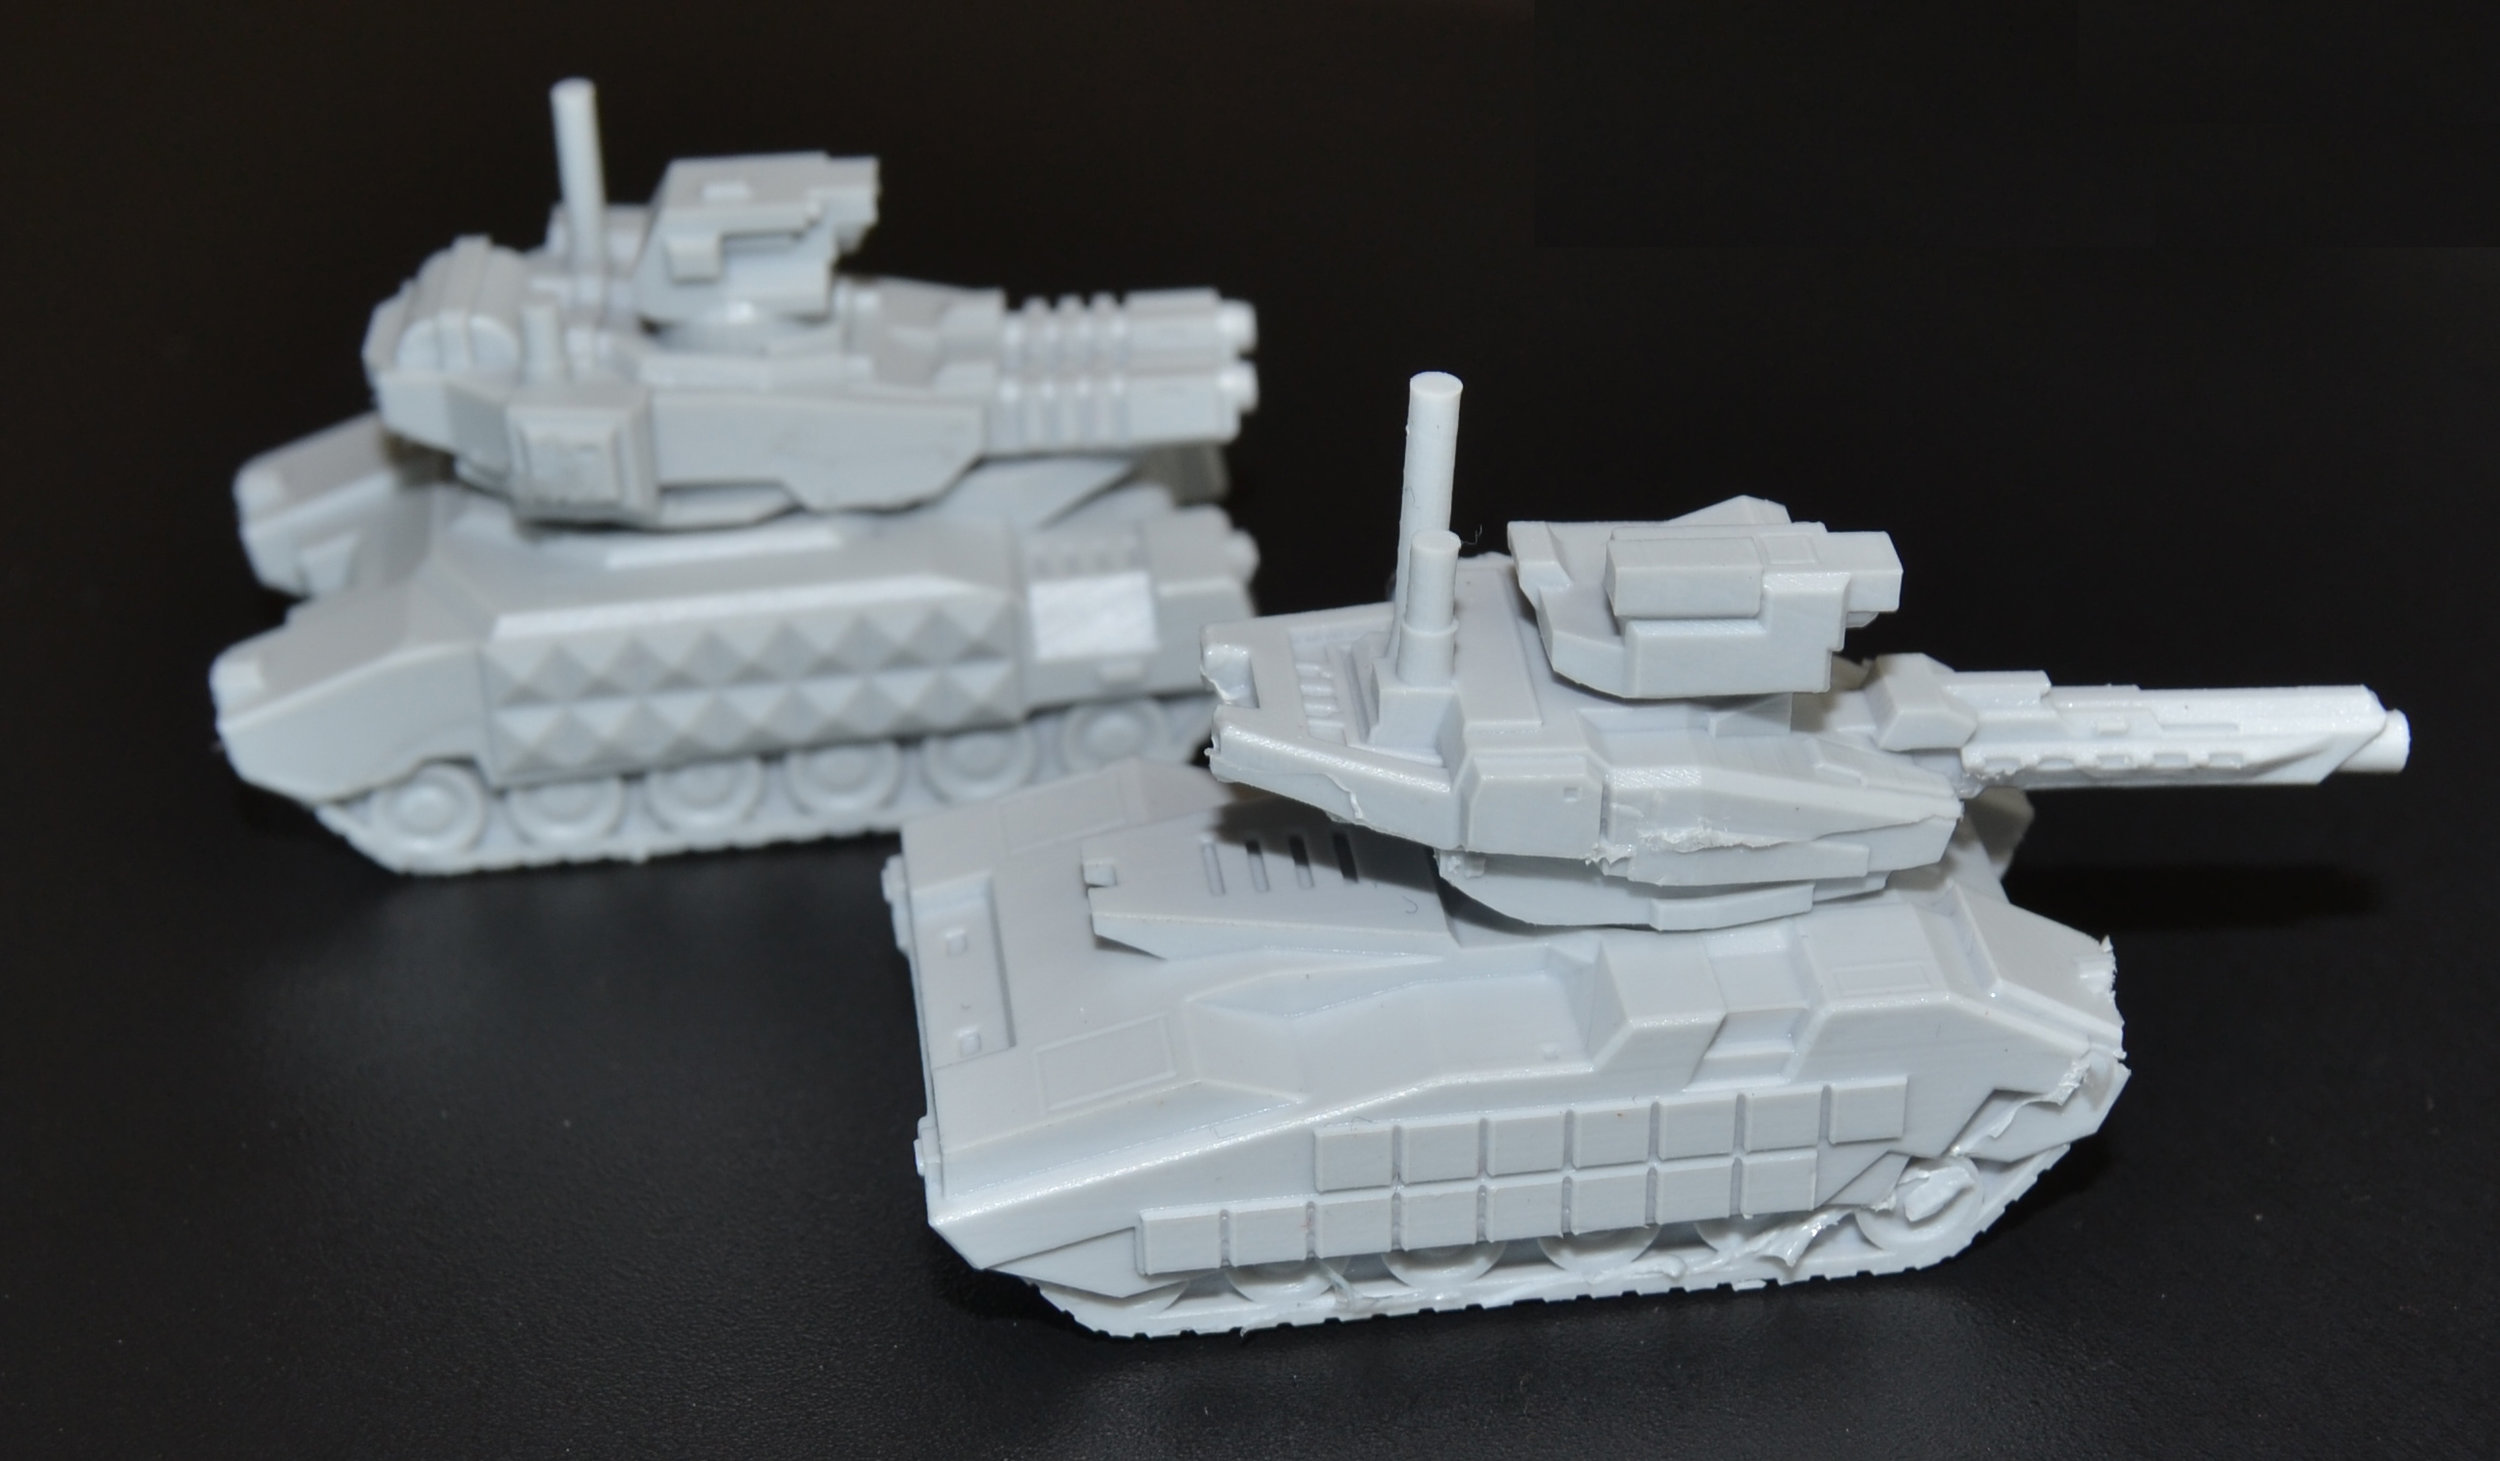 Wolf (back) and Rhino (front) tanks in resin